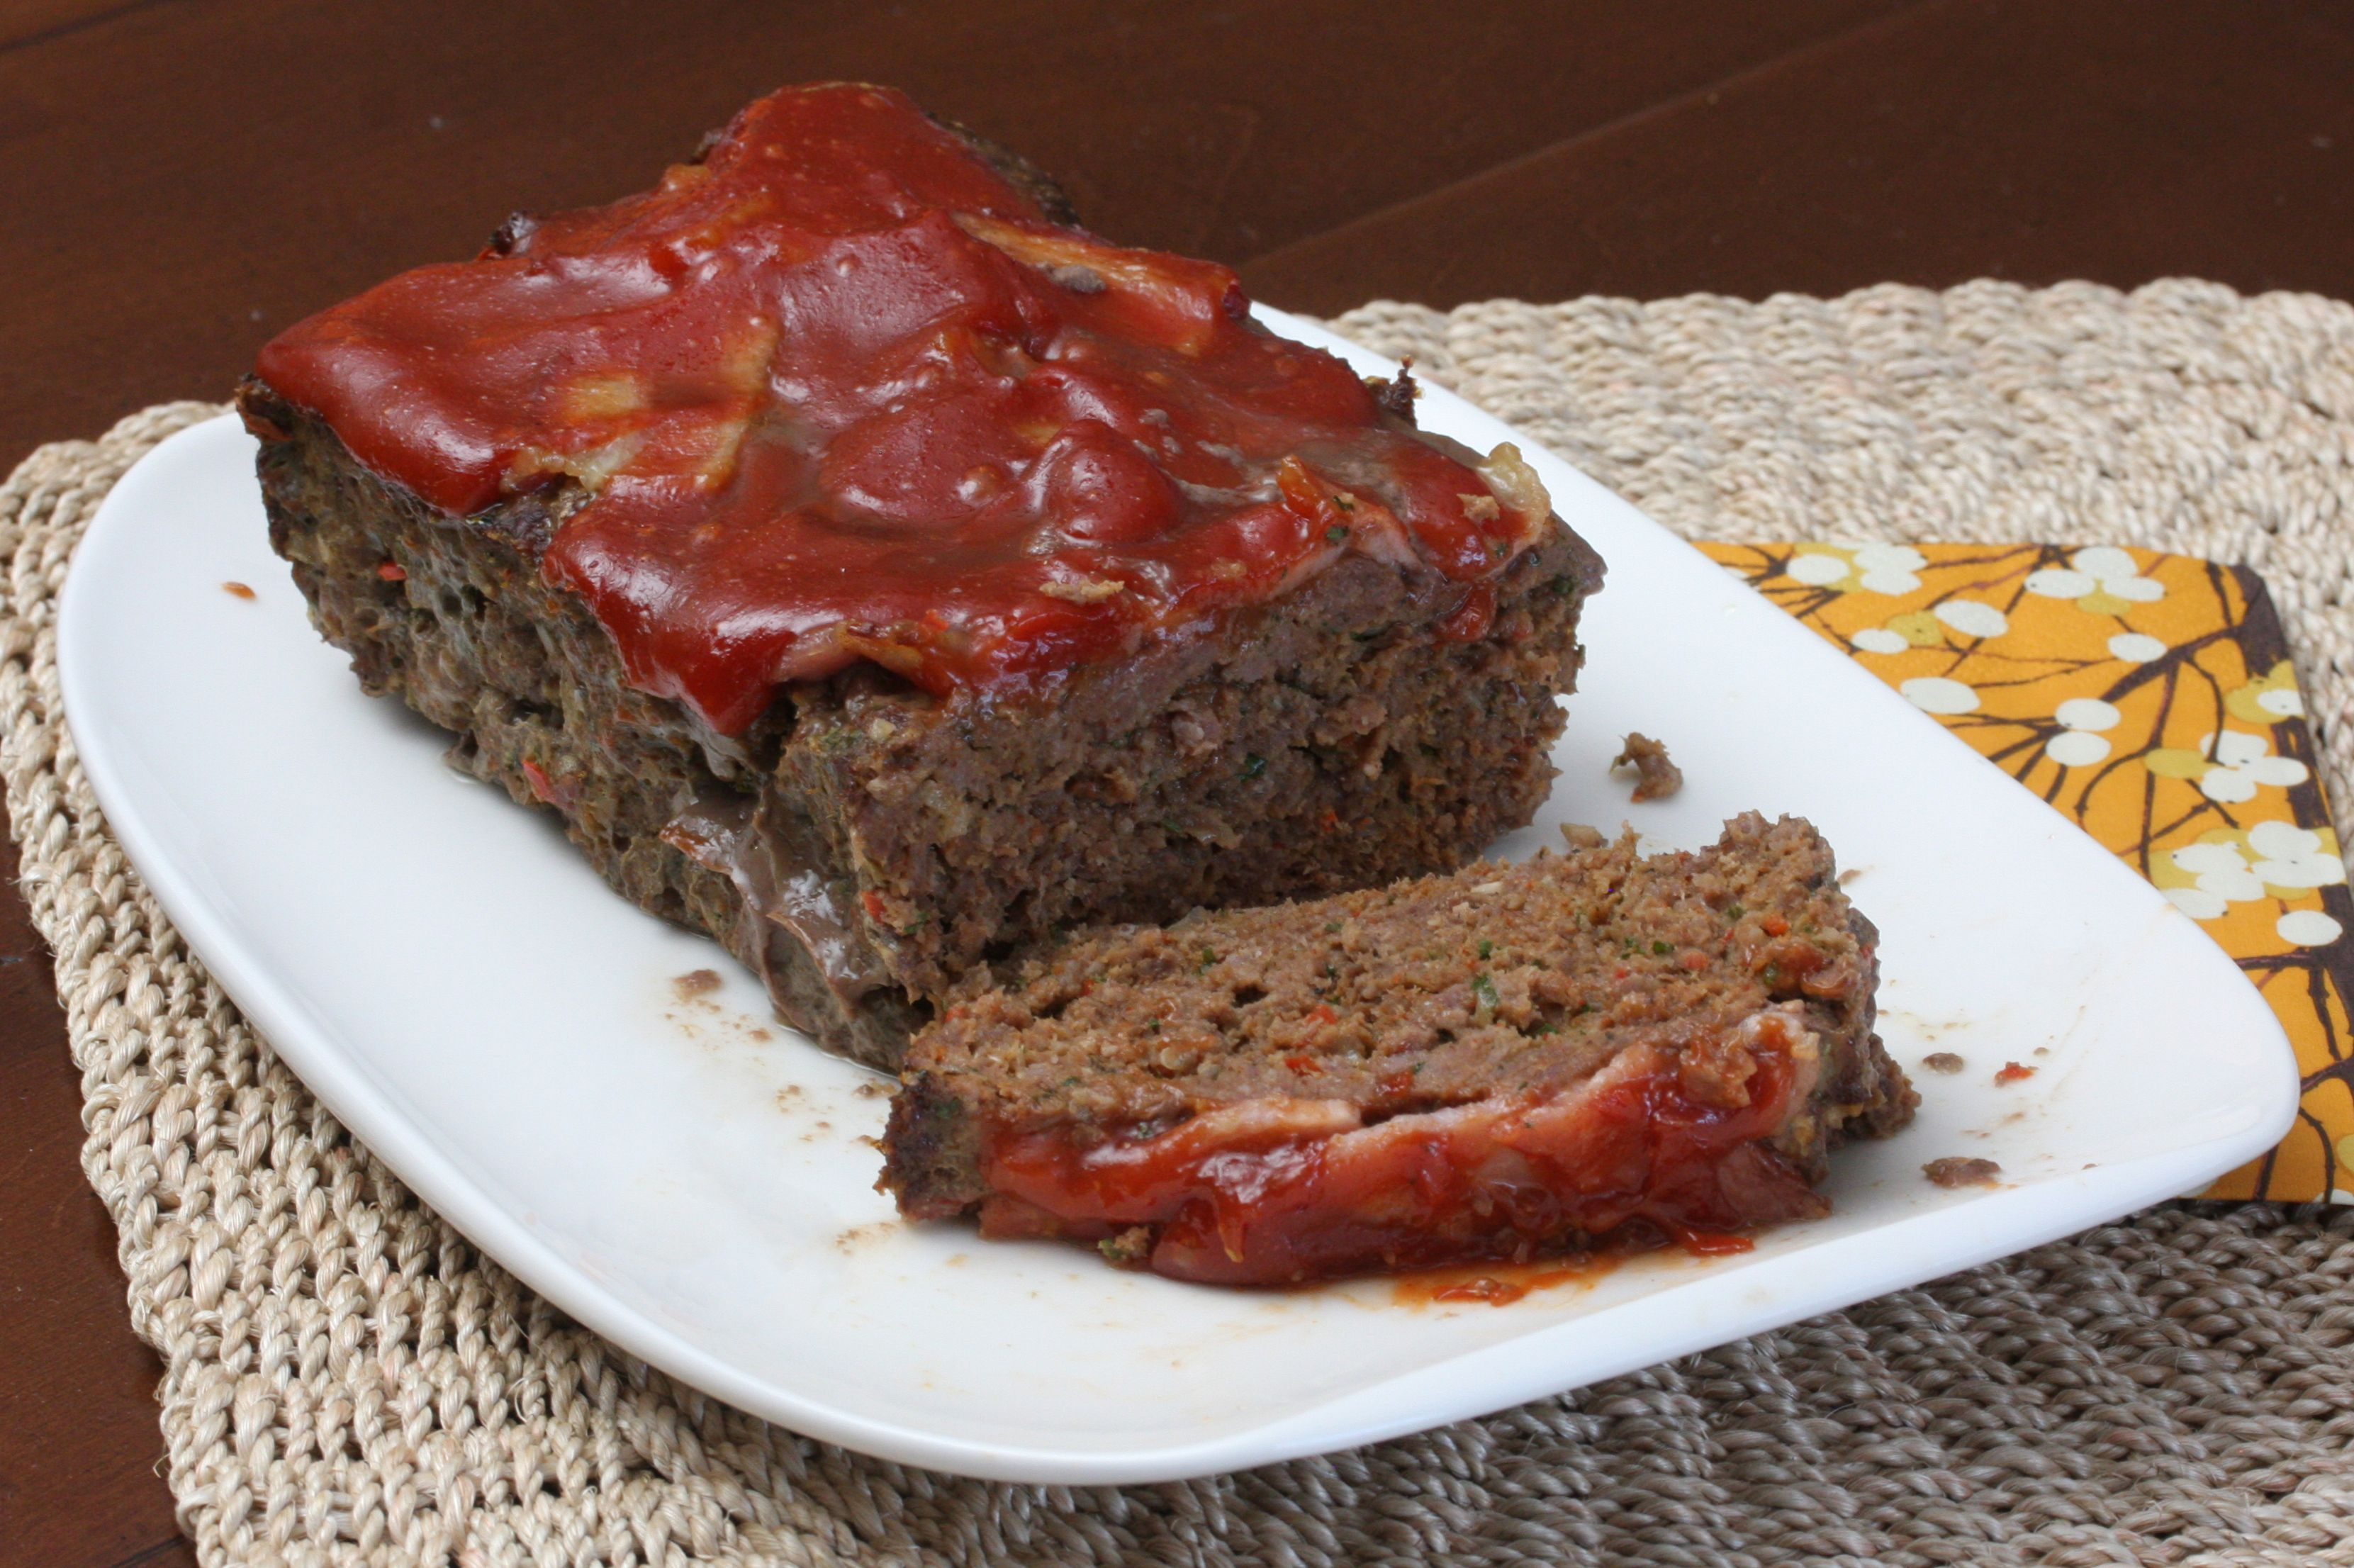 Moist And Flavorful Beef And Sausage Meatloaf Recipe Sausage Meatloaf Meatloaf Meatloaf Recipe With Sausage